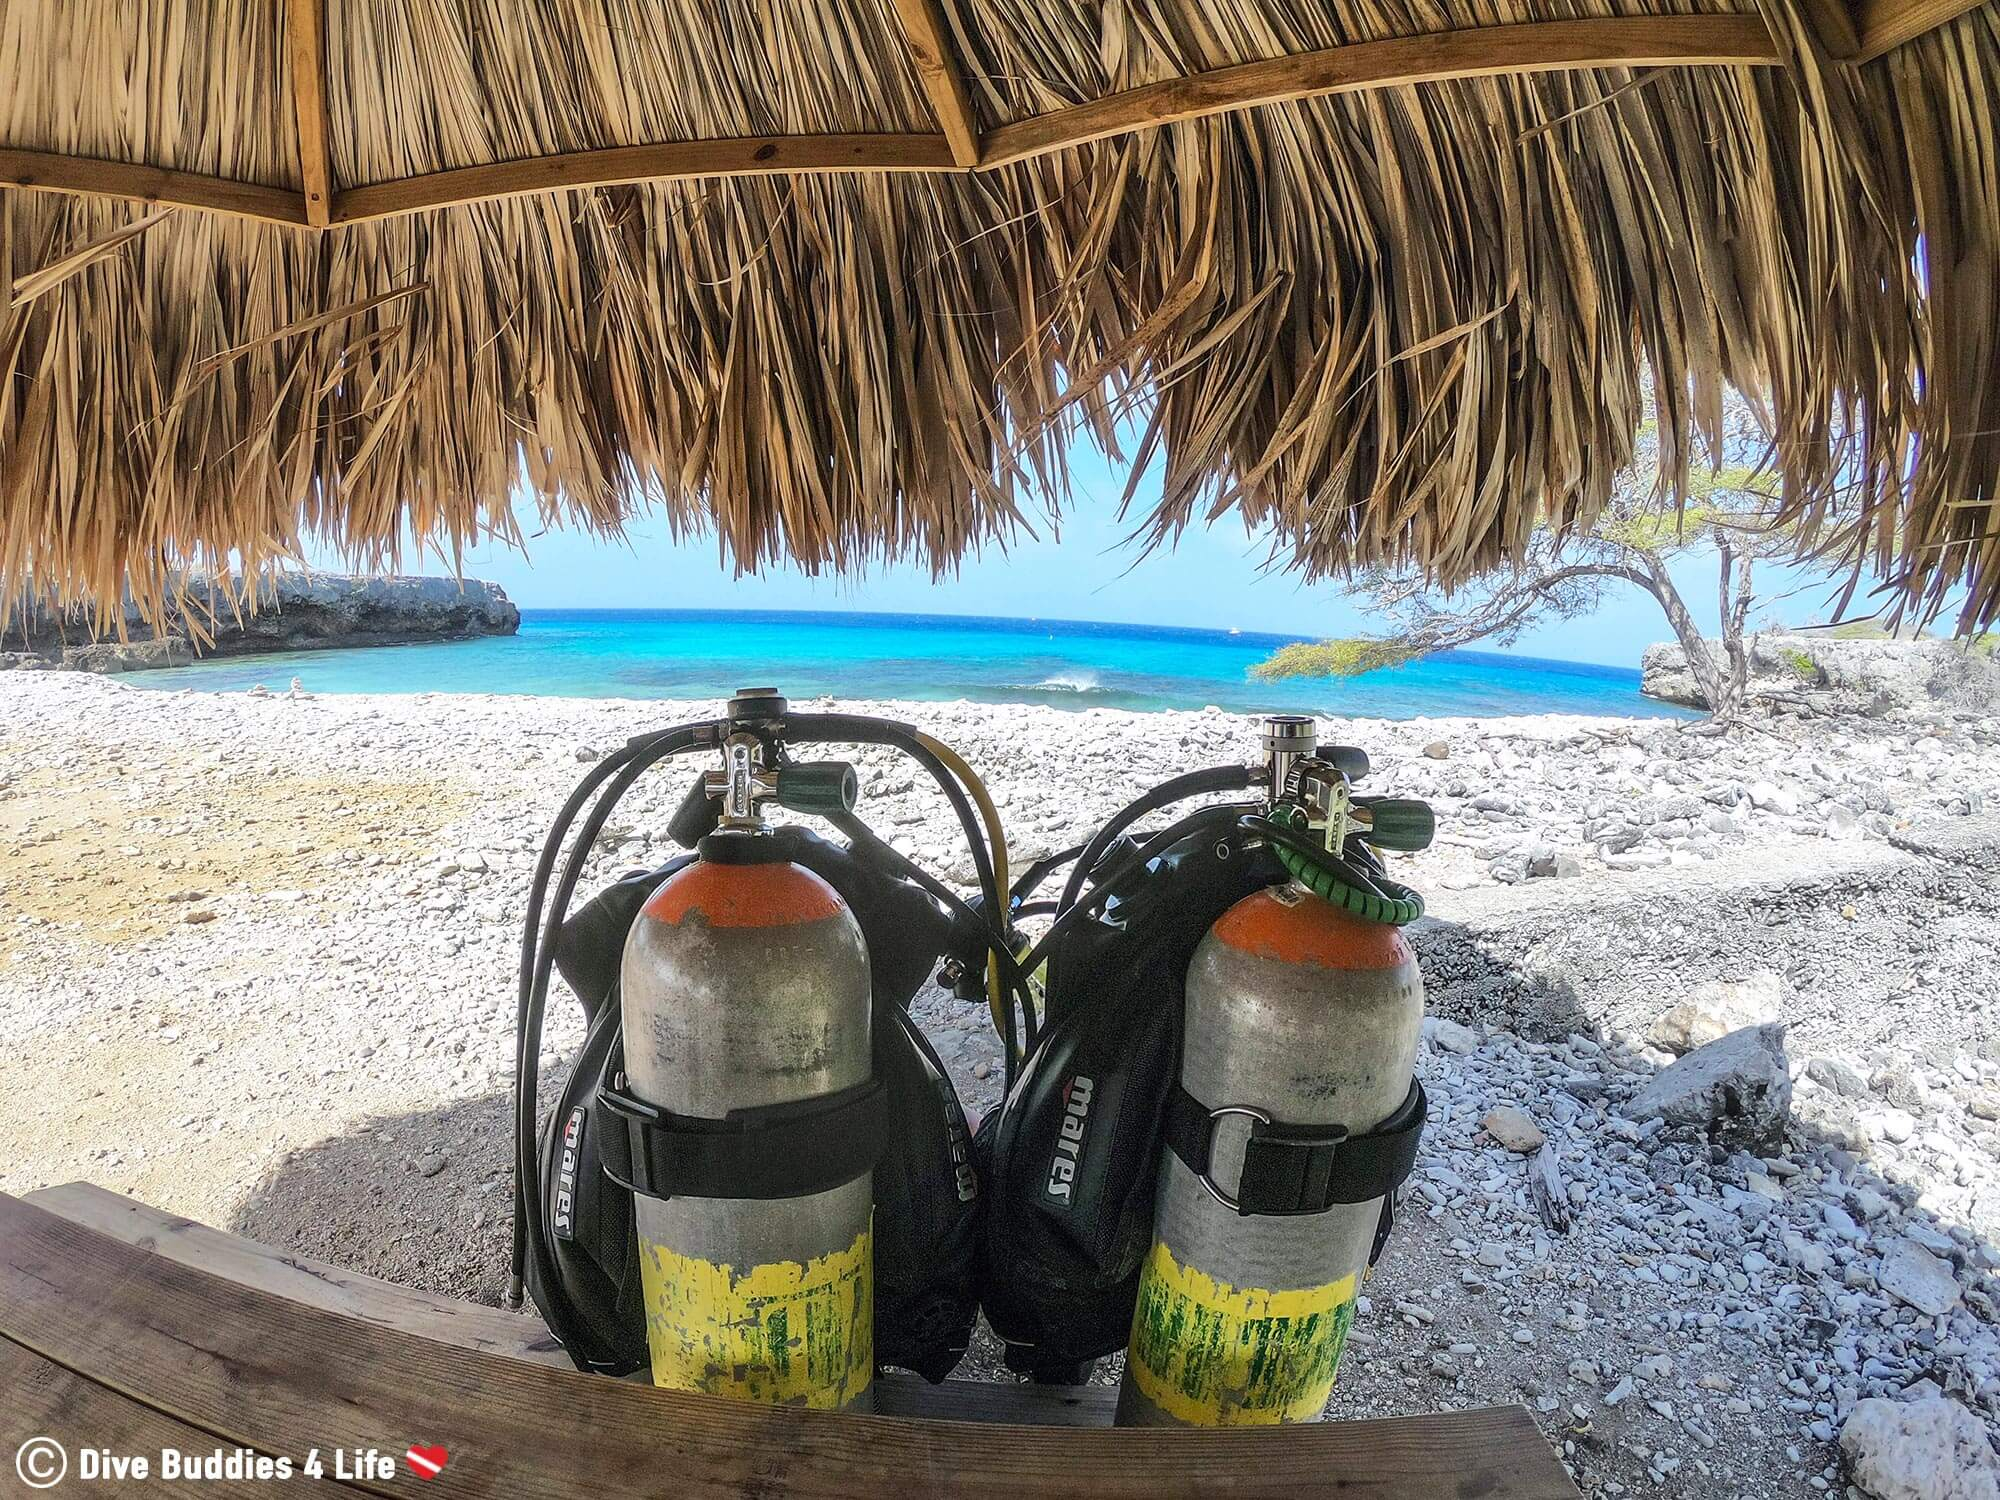 A Paire Of Scuba Diving Tanks At A Table Close To The Ocean In Bonaire, Caribbean